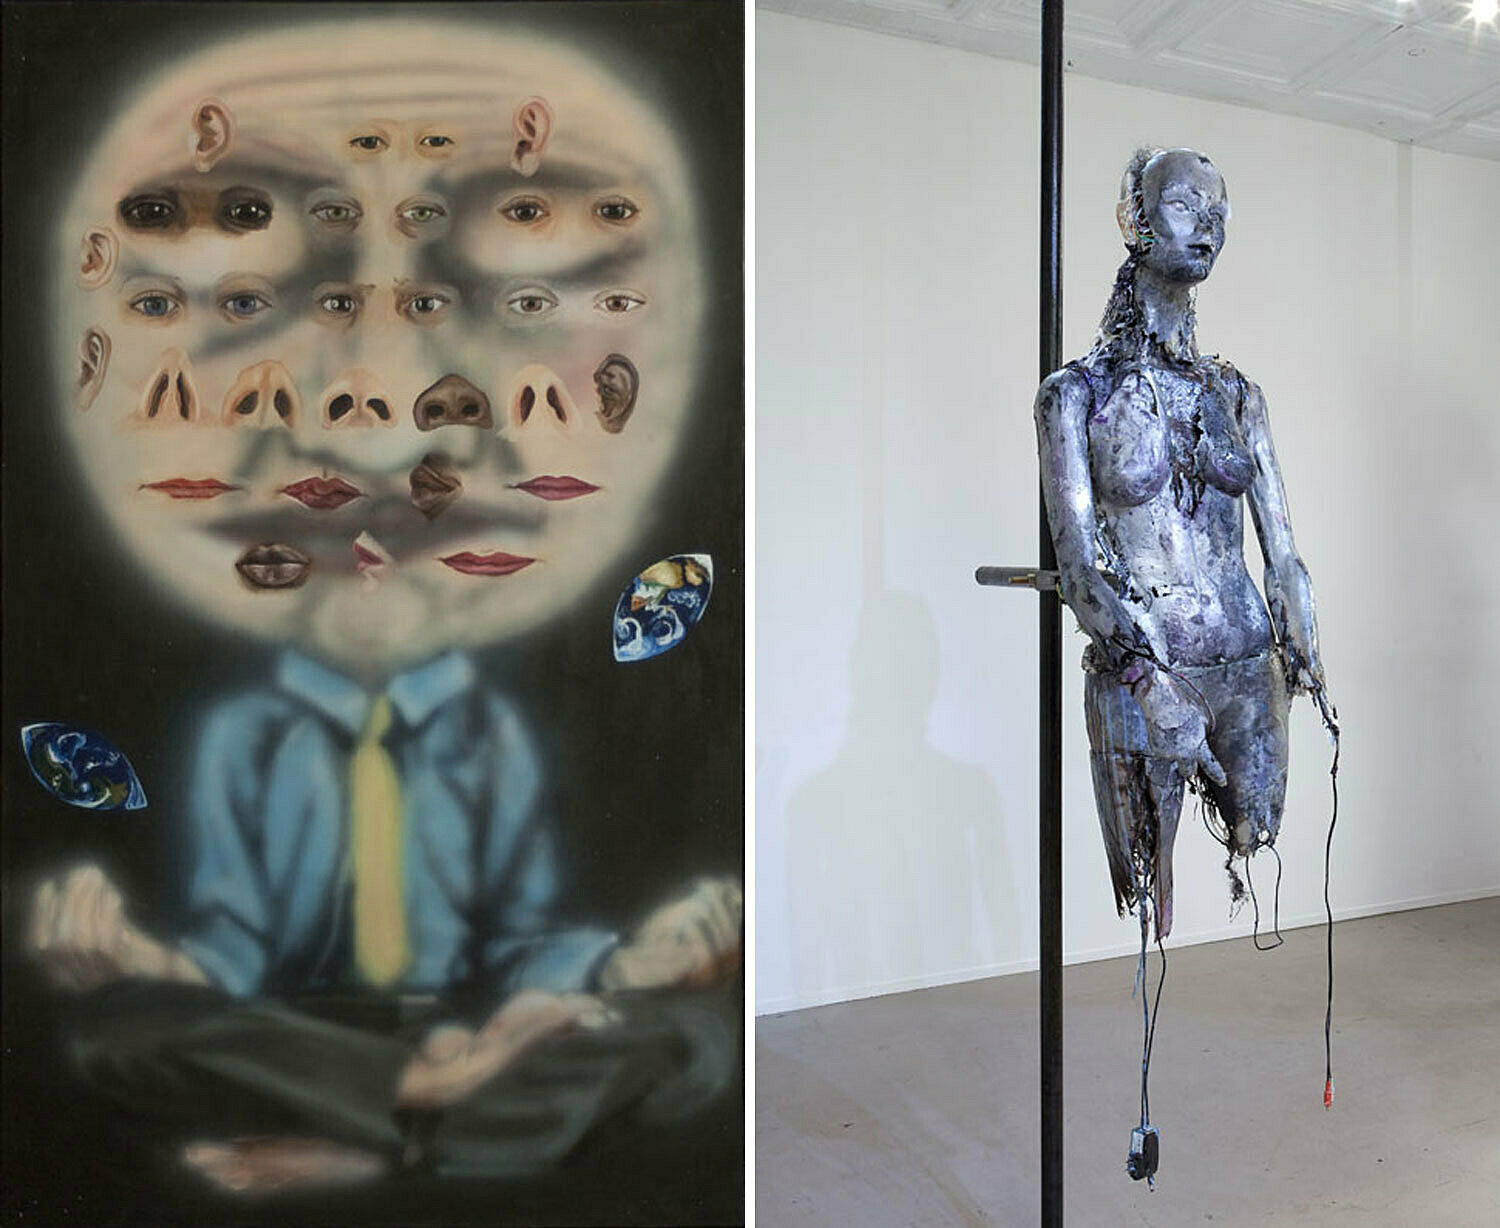 A painting by Jana Euler and a sculpture by Stewart Uoo. Both depict figures.